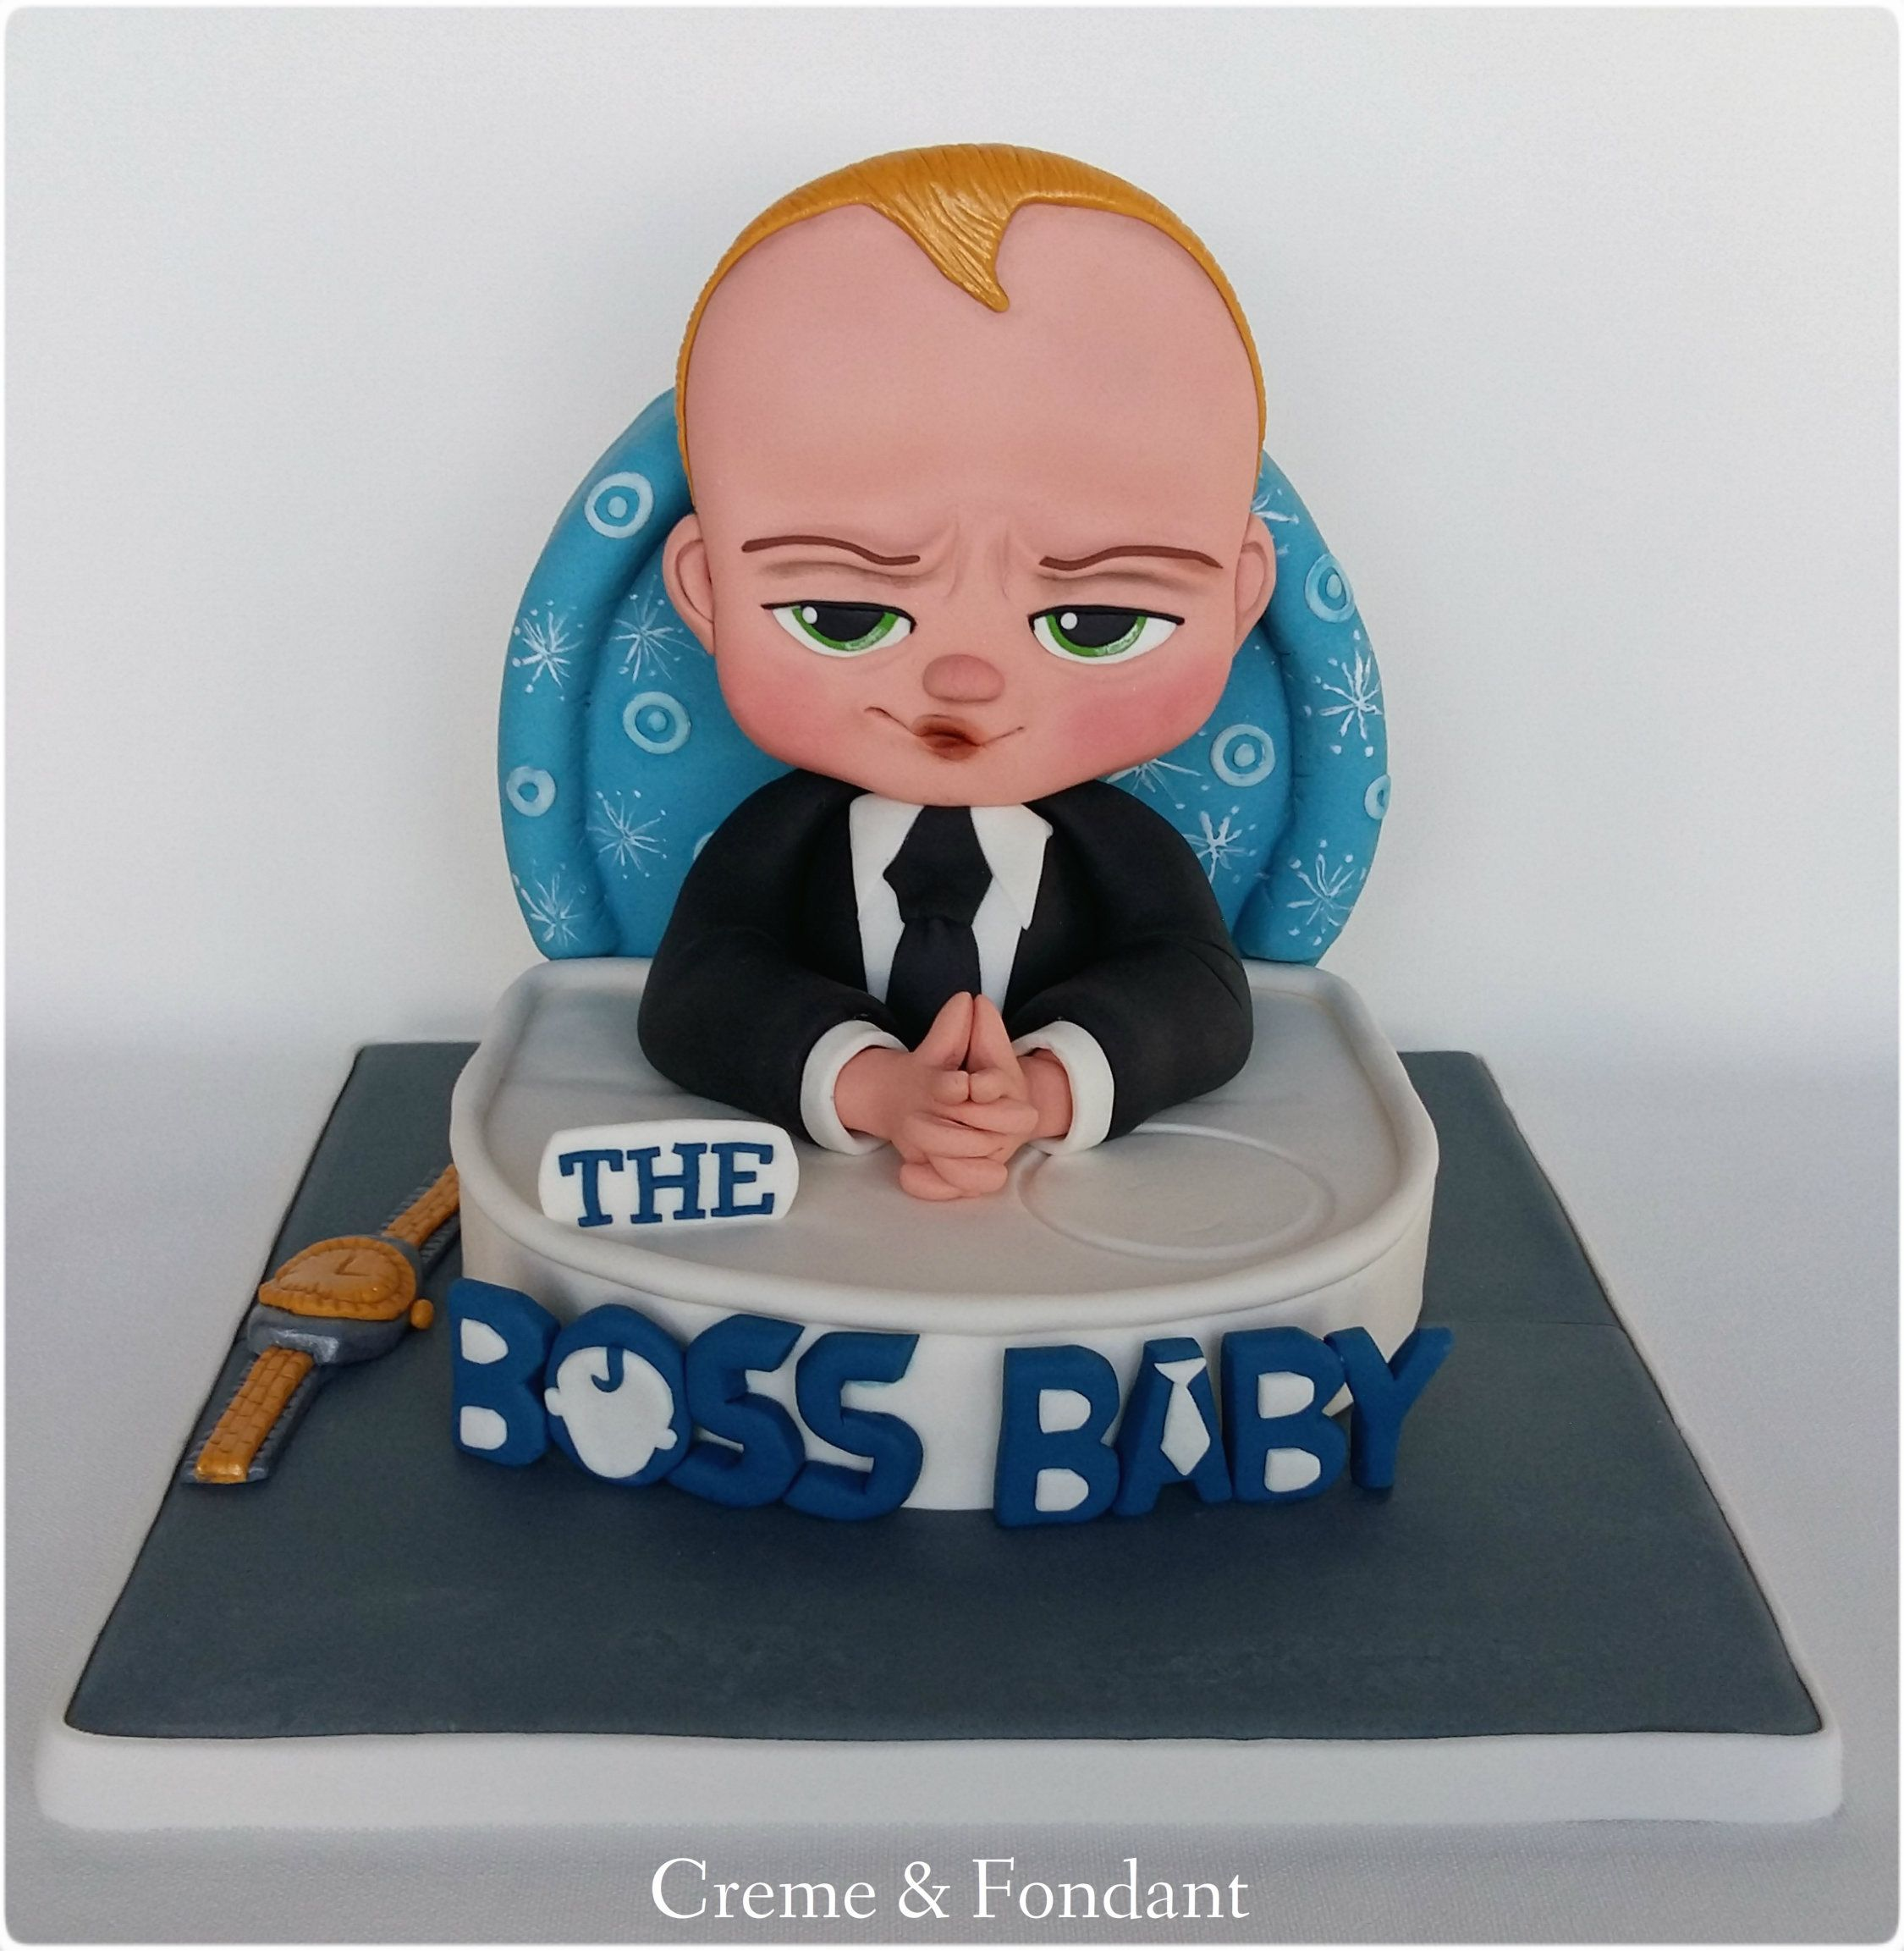 The boss baby cake cakes pinterest cake babies and for Baby cake decoration